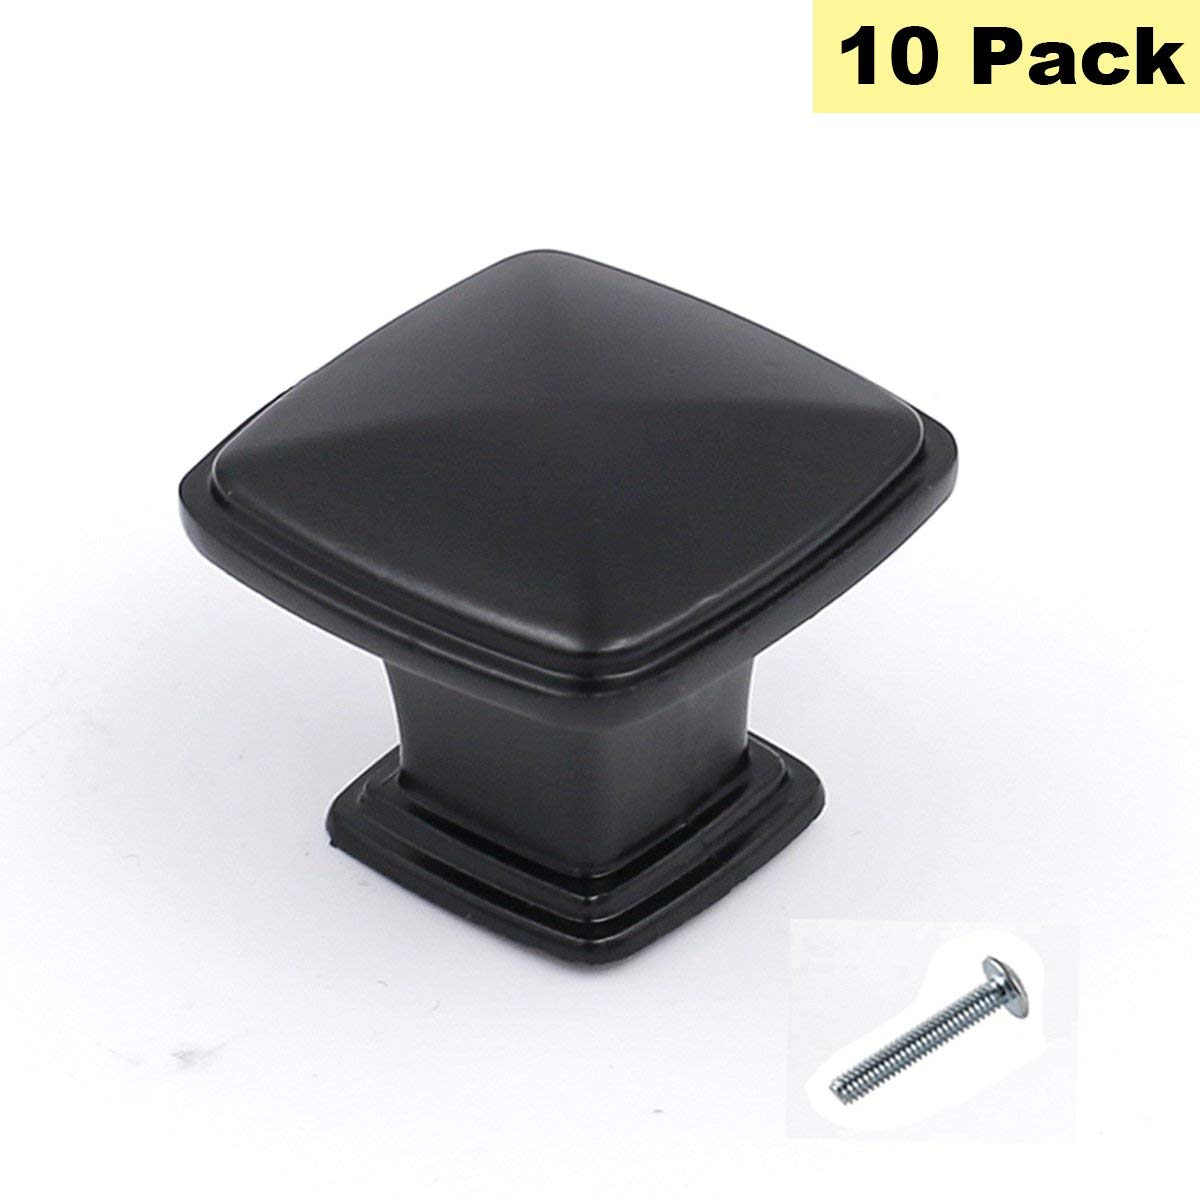 Flat Black Cabinet Knobs Square Knobs for Kitchen Cabinets 10 Pack - Peaha PH8791BK Solid Single Hole Flat Black Drawer Pulls Cabinet Hardware Knobs 10 Pack